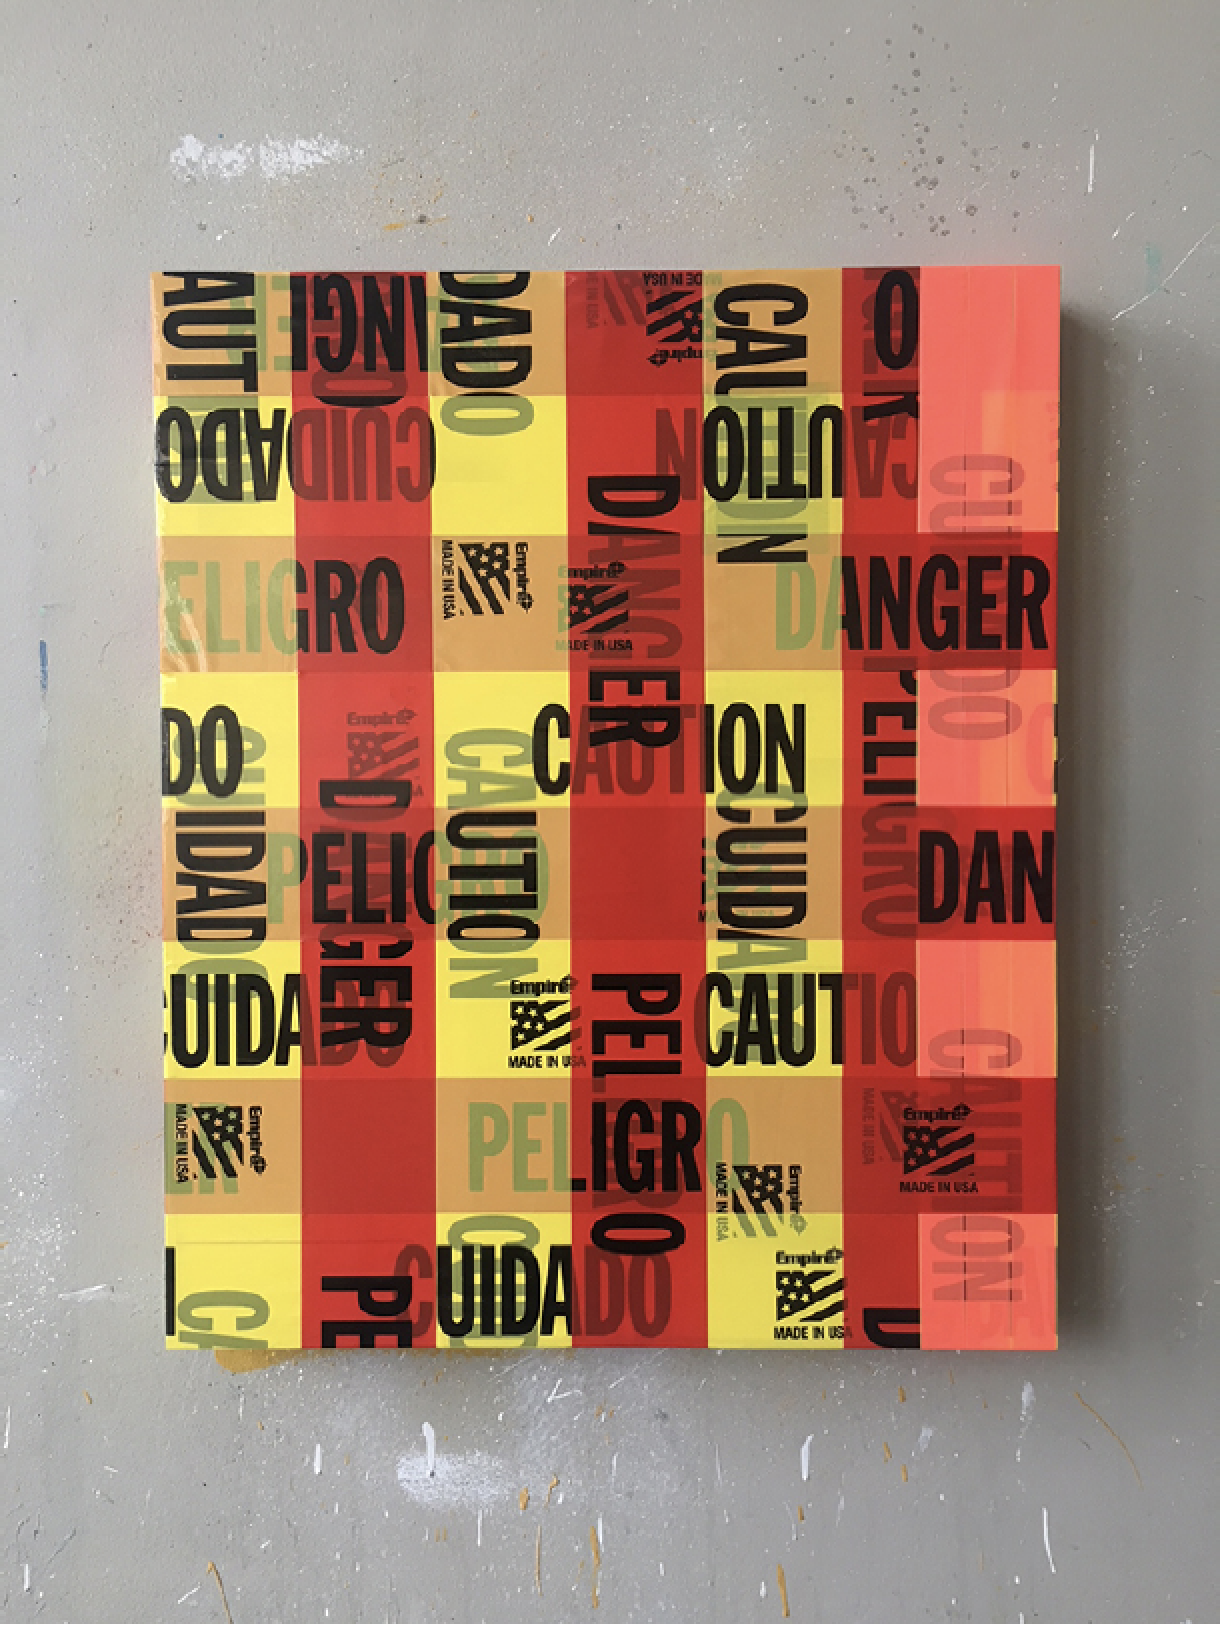 Caution/Danger #3, 2019  Mixed media collage on panel, 24 x 20, $2,000